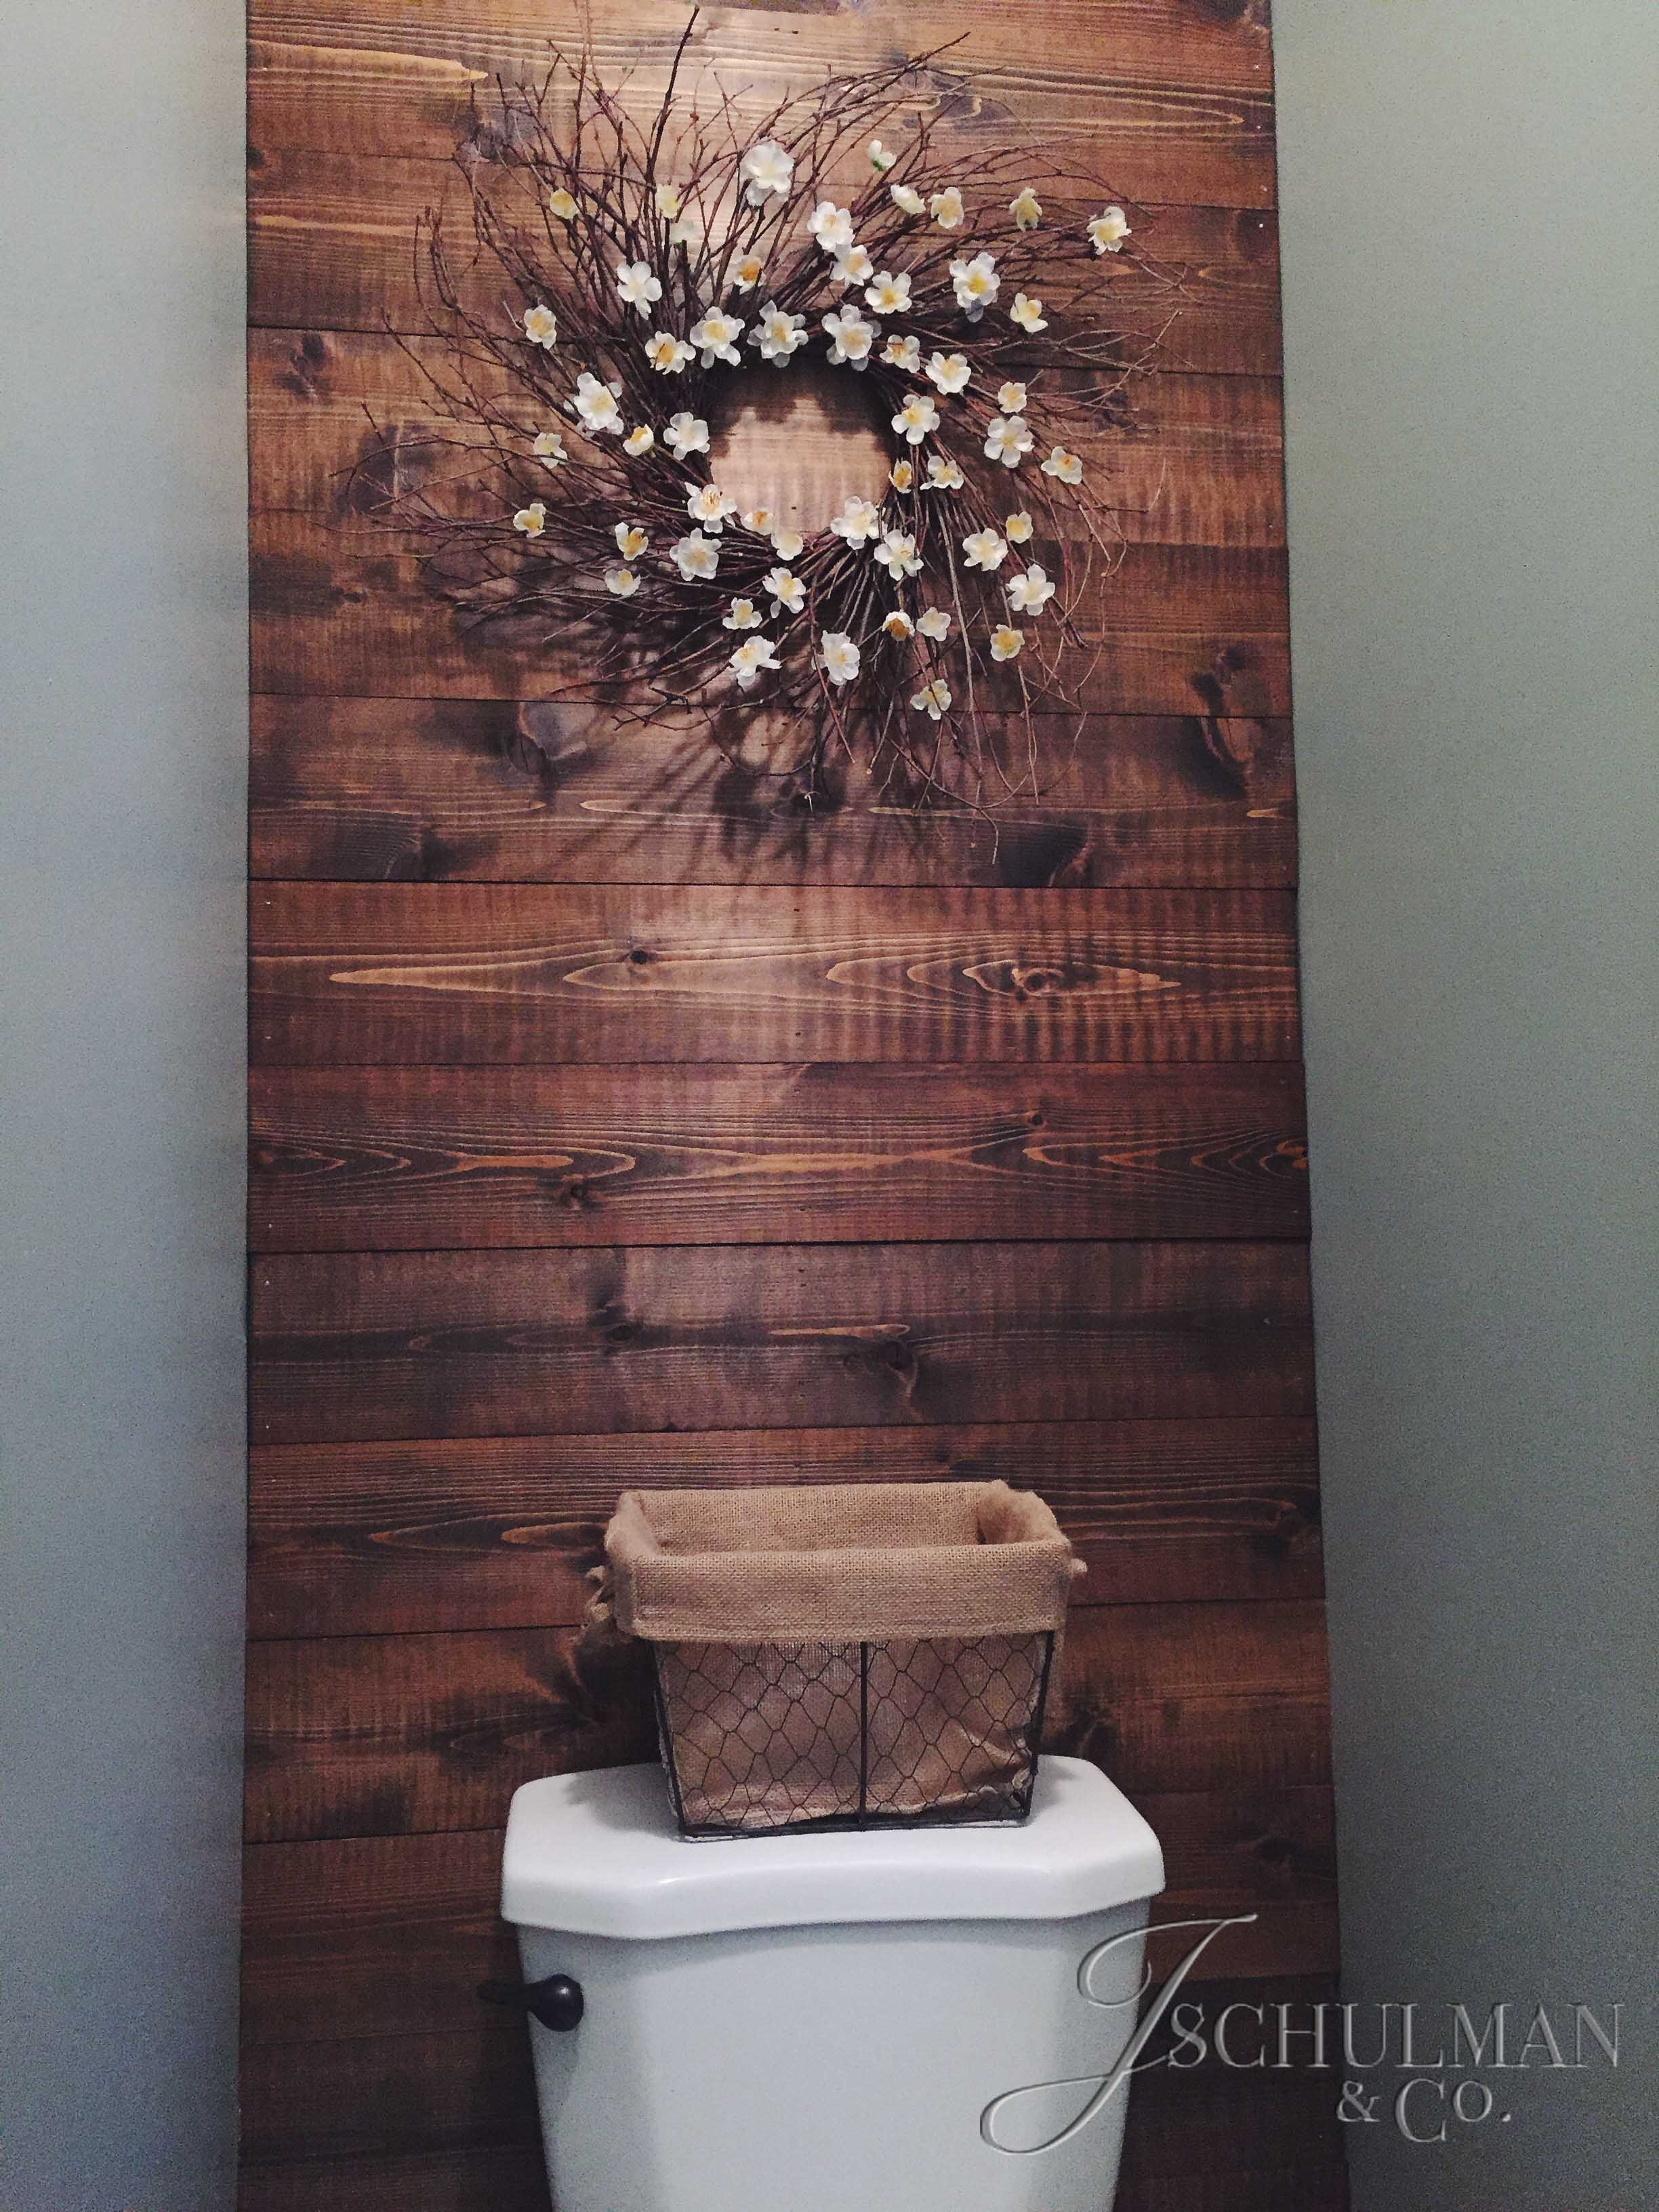 30 Inspiring Accent Wall Ideas To Change An Area | Bathroom Accent Pertaining To Recent Wall Accents For Bathroom (View 13 of 15)